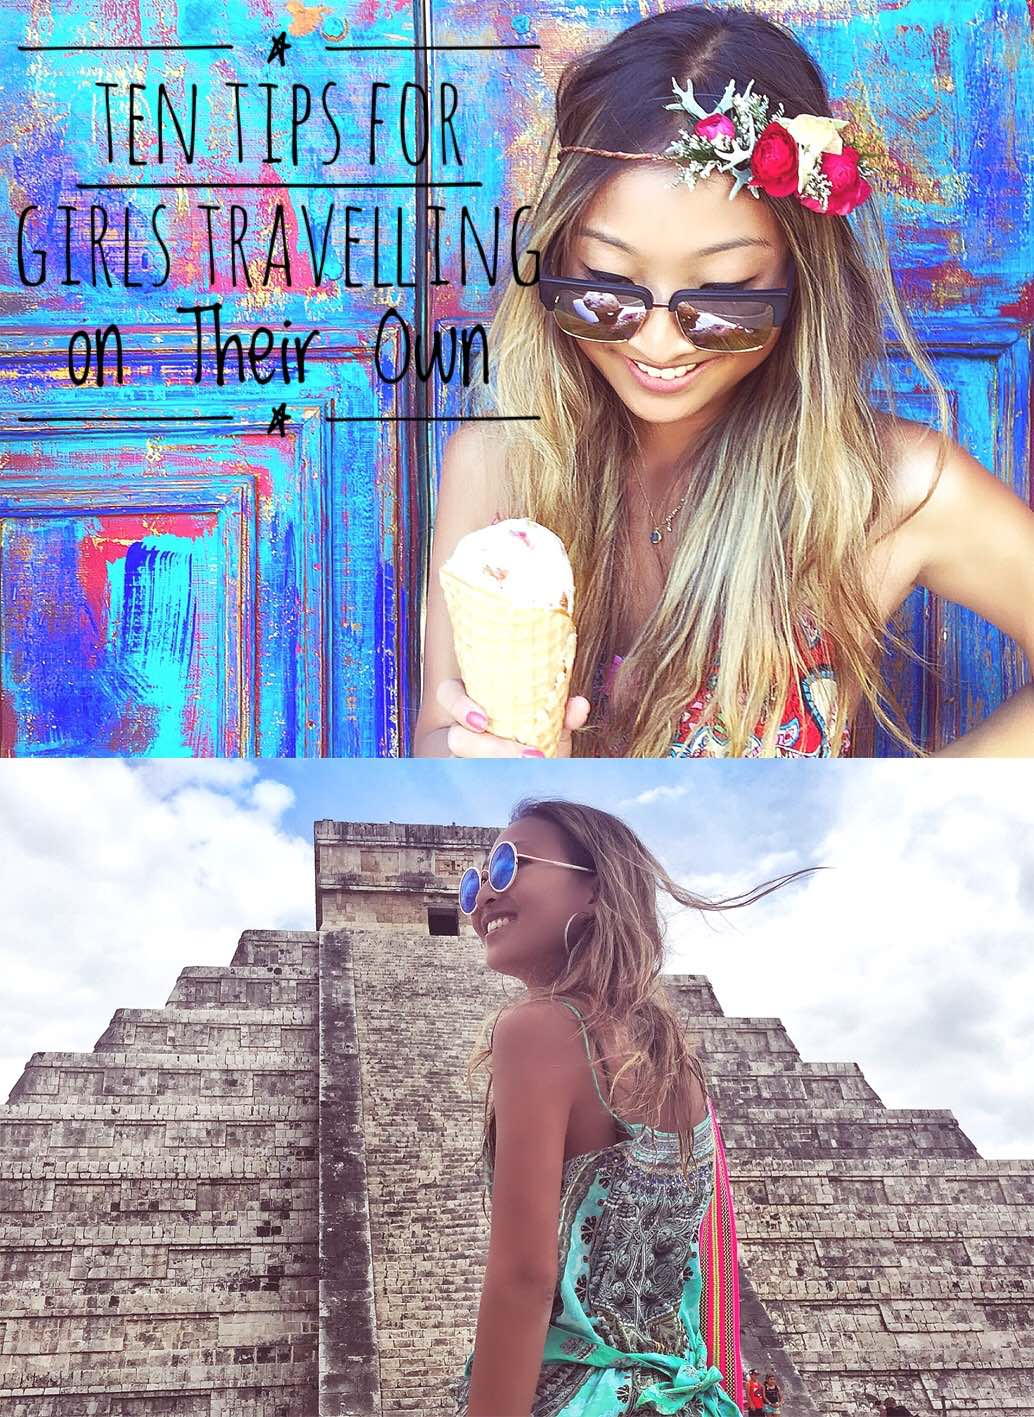 Ten Tips for Girls Travelling on Their Own